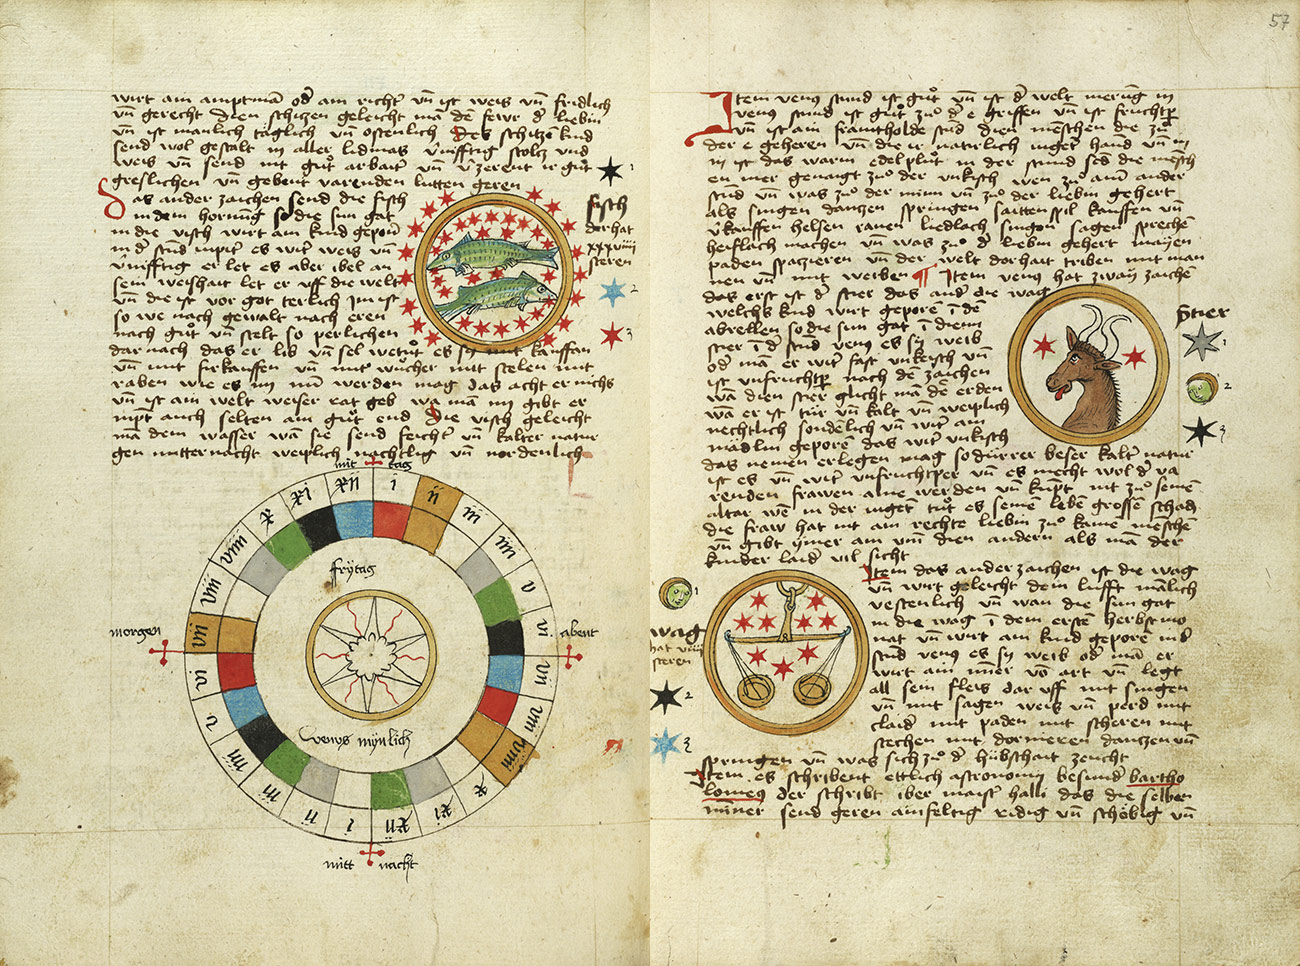 A two-page spread showing text in script and four illustrations: on the left, a drawing of two green fish surrounded by red stars enclosed in a gold circle and a wheel with colored squares that form a diagram for Friday; on the right, one gold circle encloses the head of a slender bull and two red stars and another encloses golden scales and nine red stars.